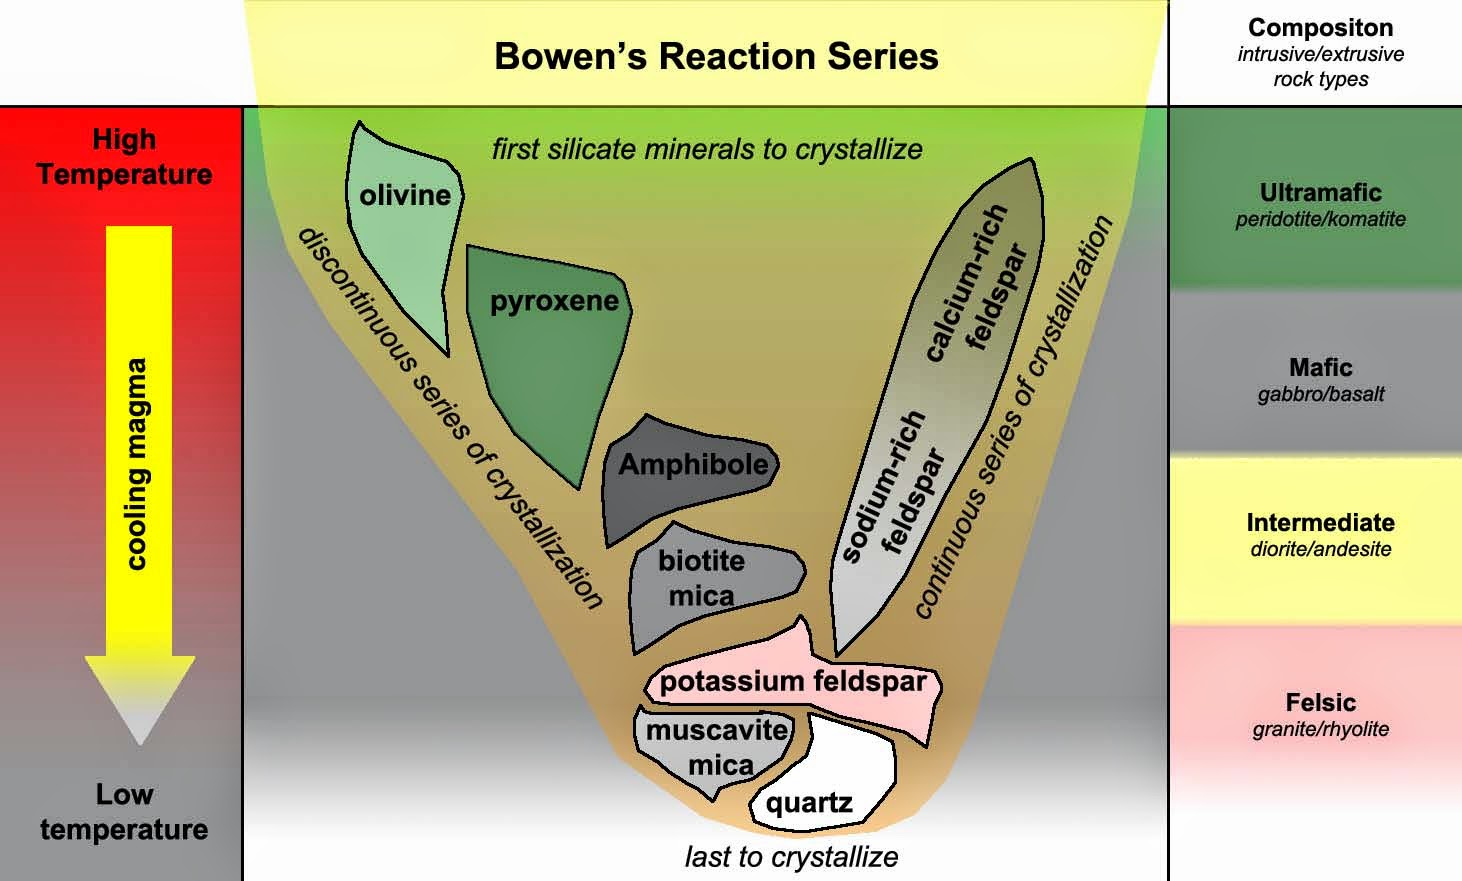 medium resolution of how does bowen s reaction series relate to the classification of igneous rock